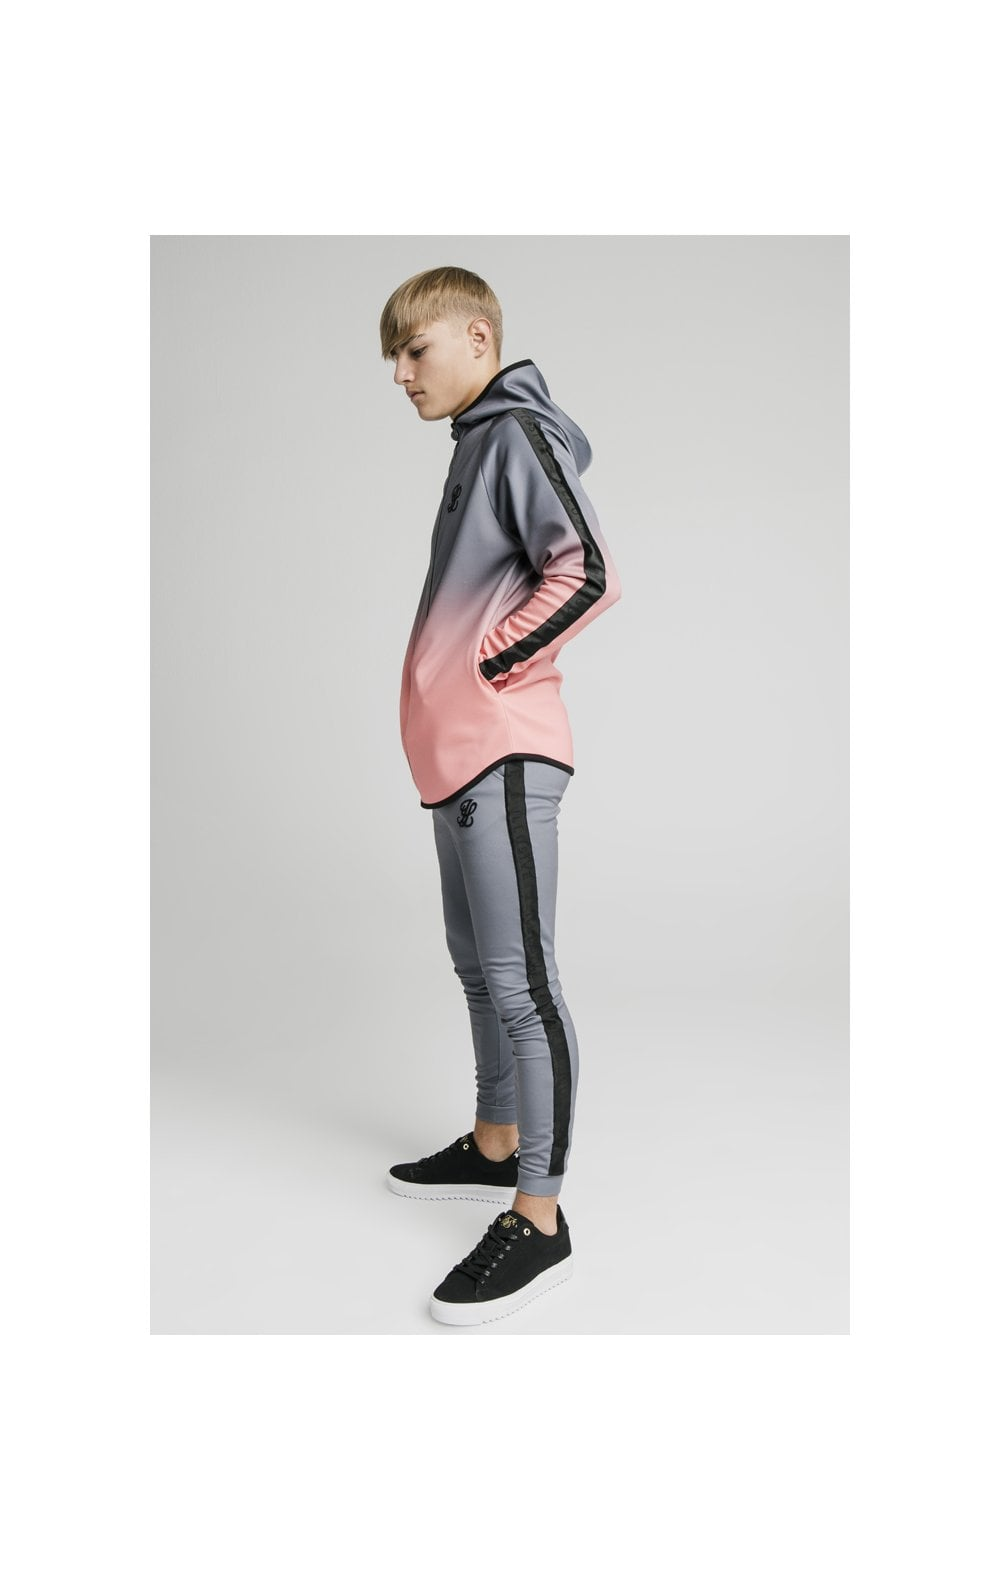 Load image into Gallery viewer, Illusive London Athlete Zip Through Fade Hoodie - Grey & Peach (4)